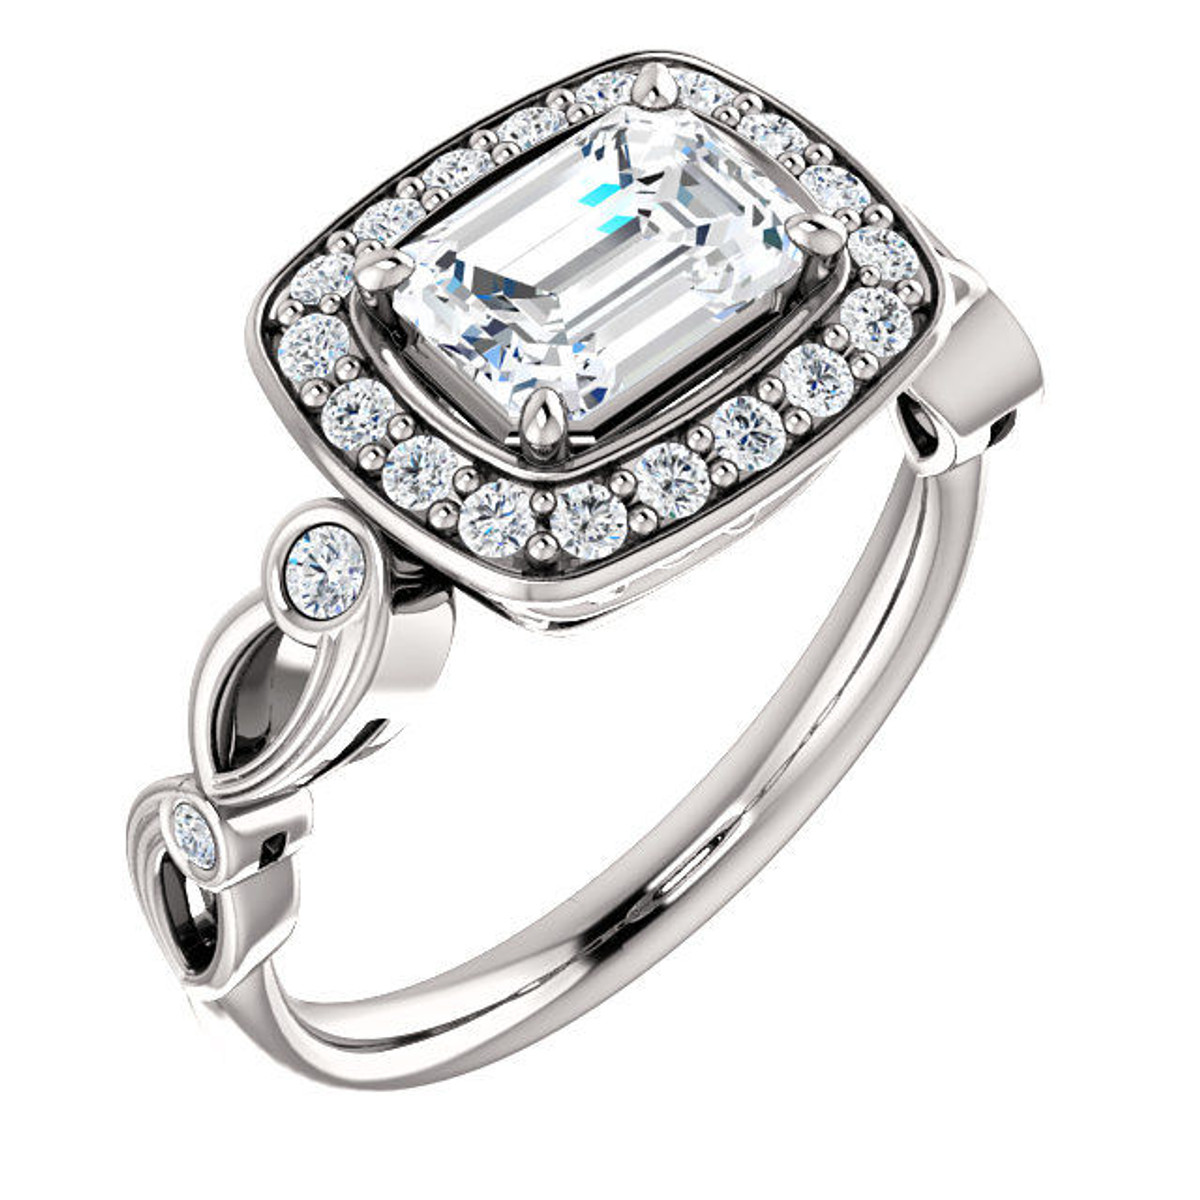 White Gold Emerald Cut Halo Engagement Ring